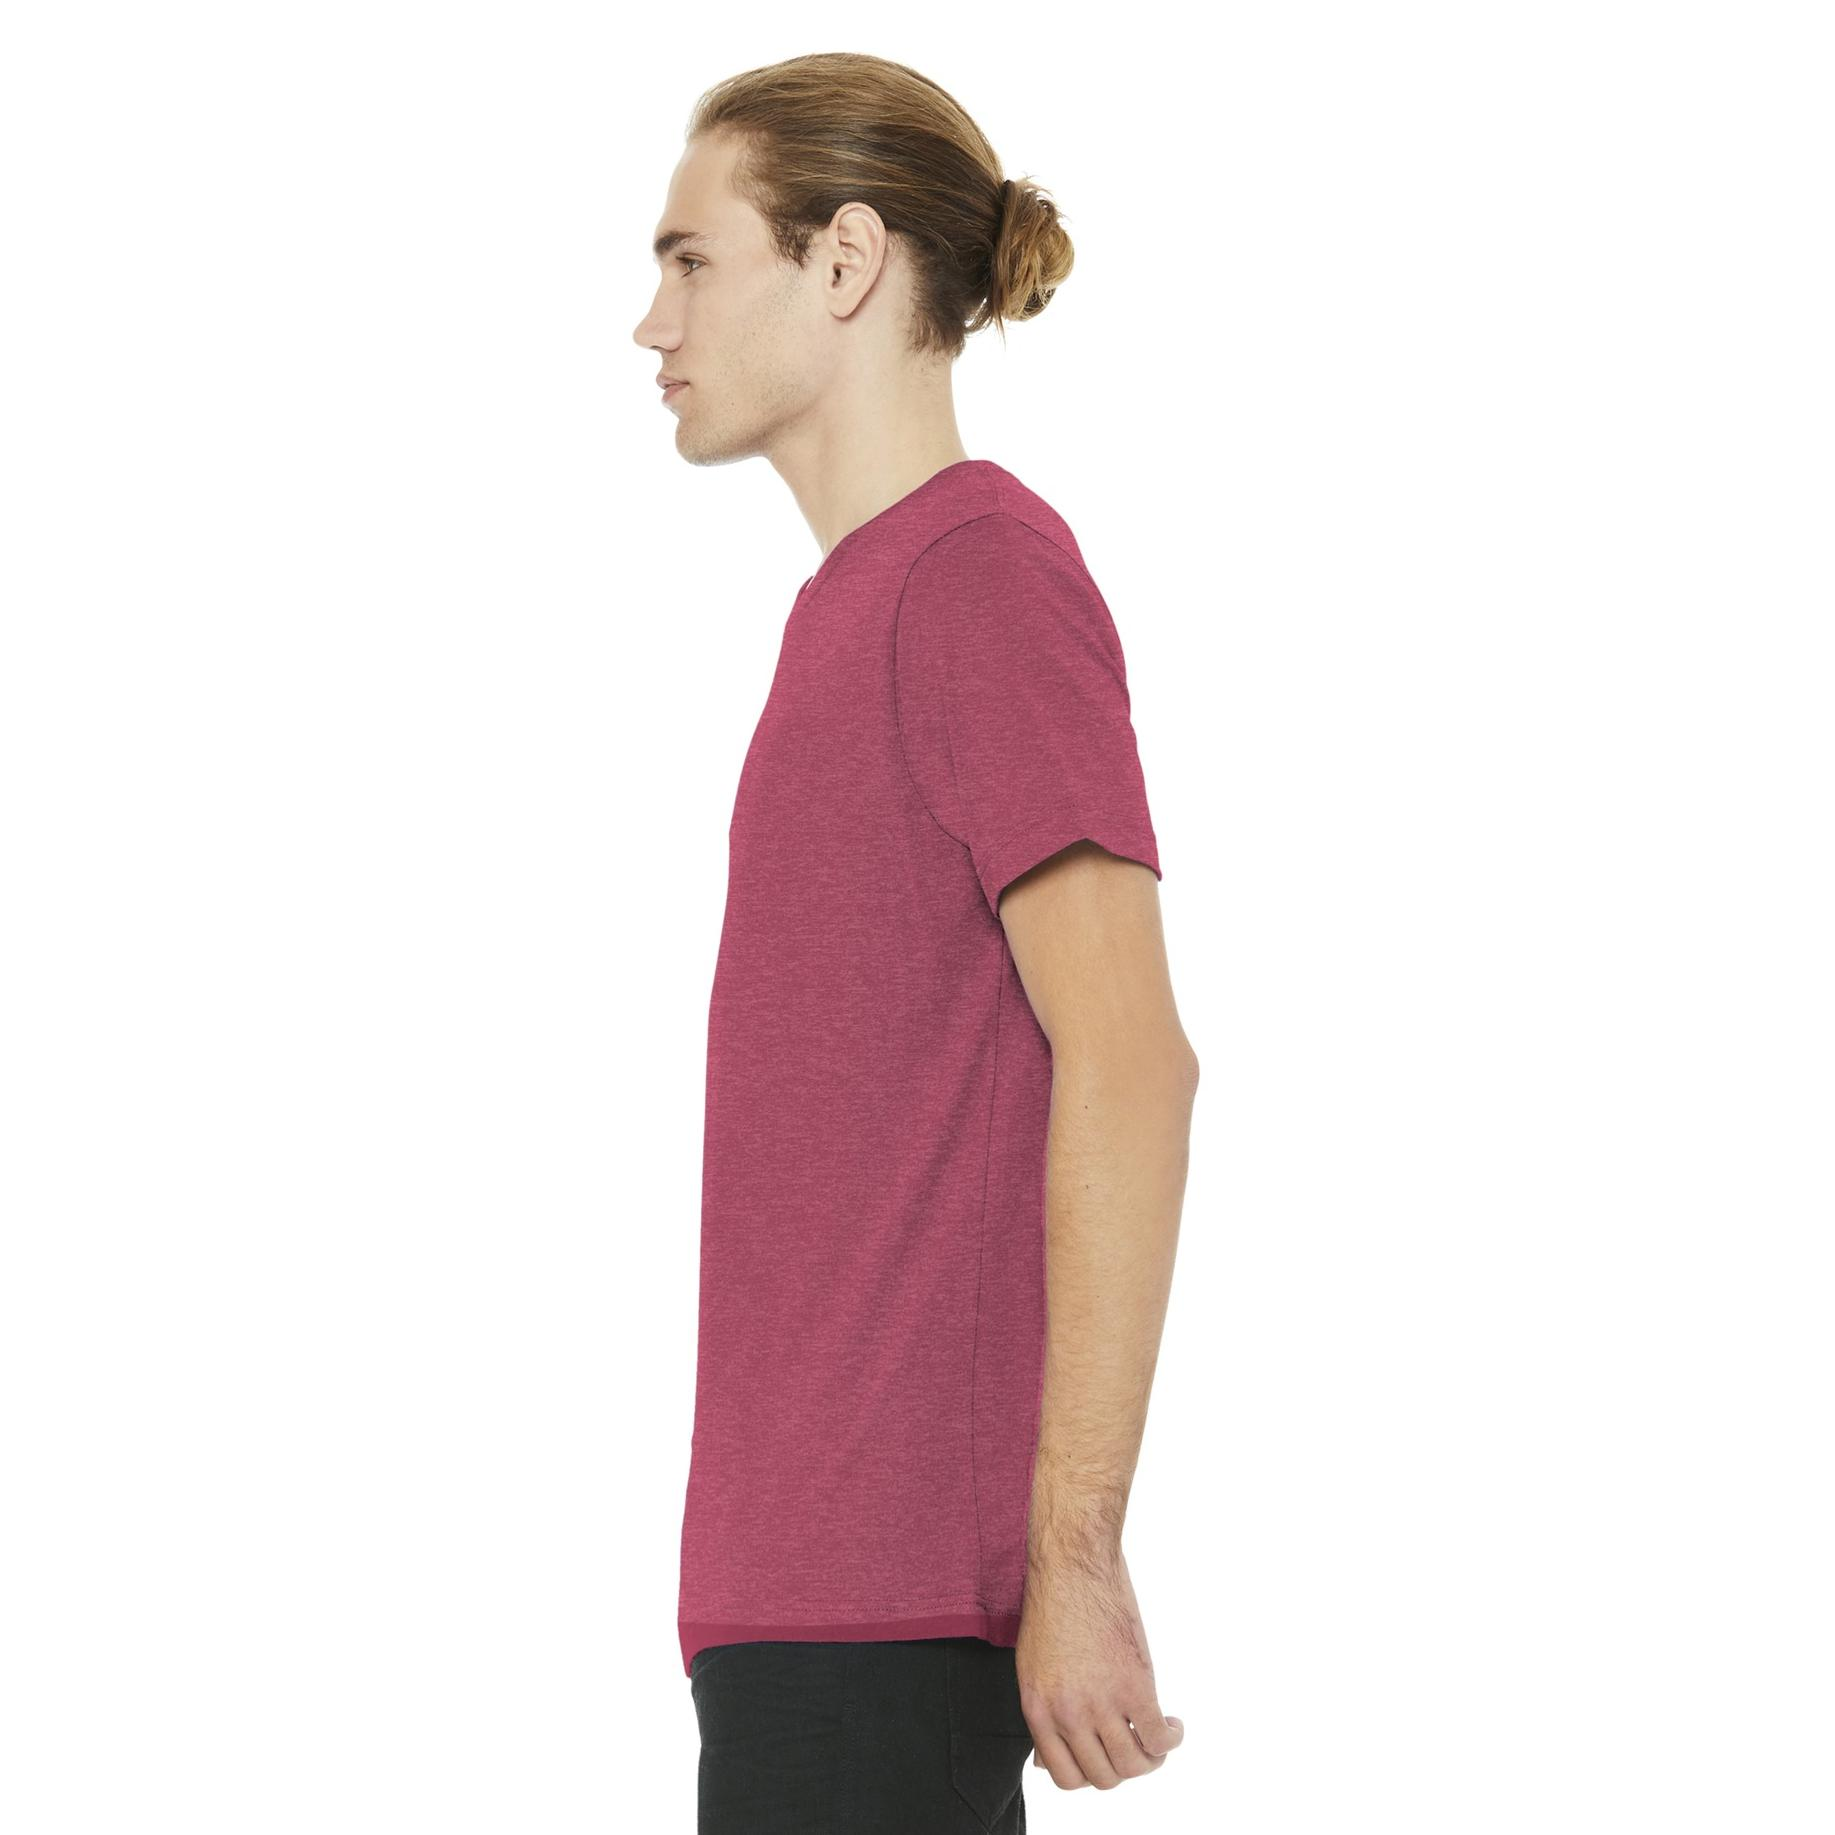 319b3109bfdb7 Bella + Canvas BC3001 Unisex Jersey Short Sleeve Tee - Heather Raspberry |  FullSource.com